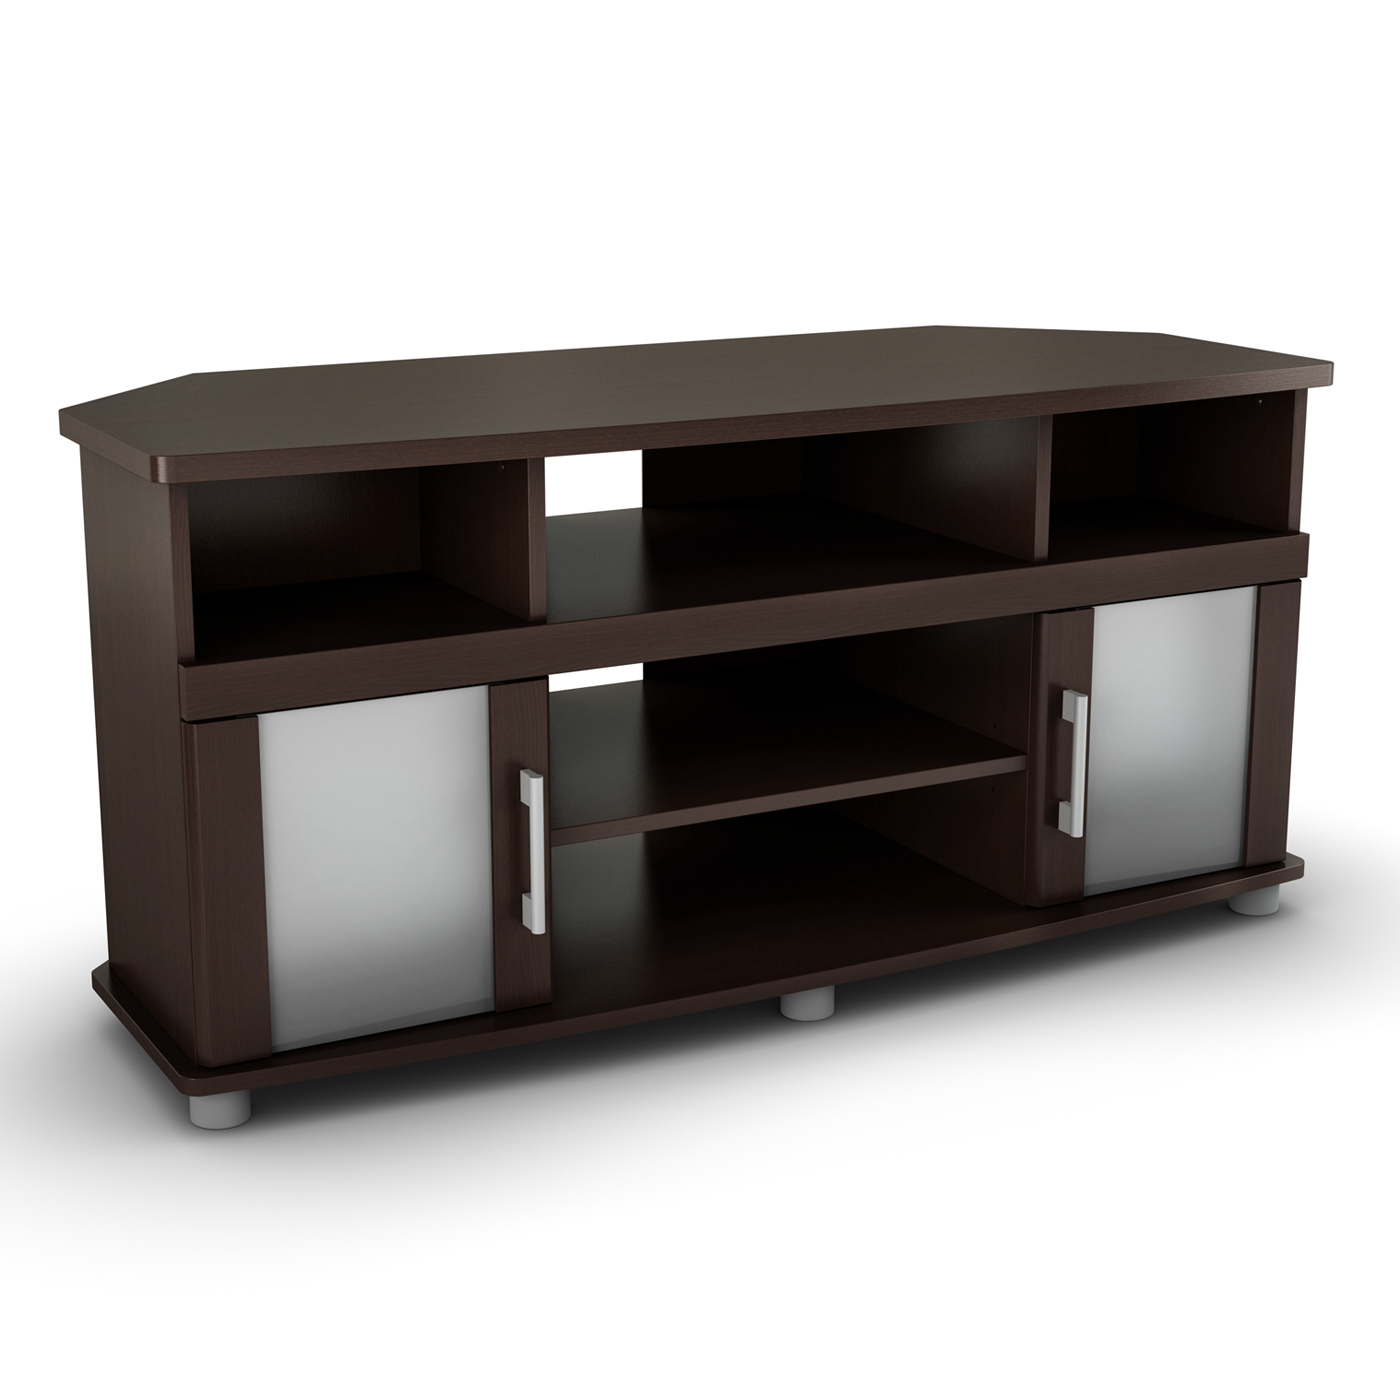 Tall Narrow Tv Stand For Bedroom 32 Inch Target Bookcase Extra Inside Murphy 72 Inch Tv Stands (View 9 of 20)